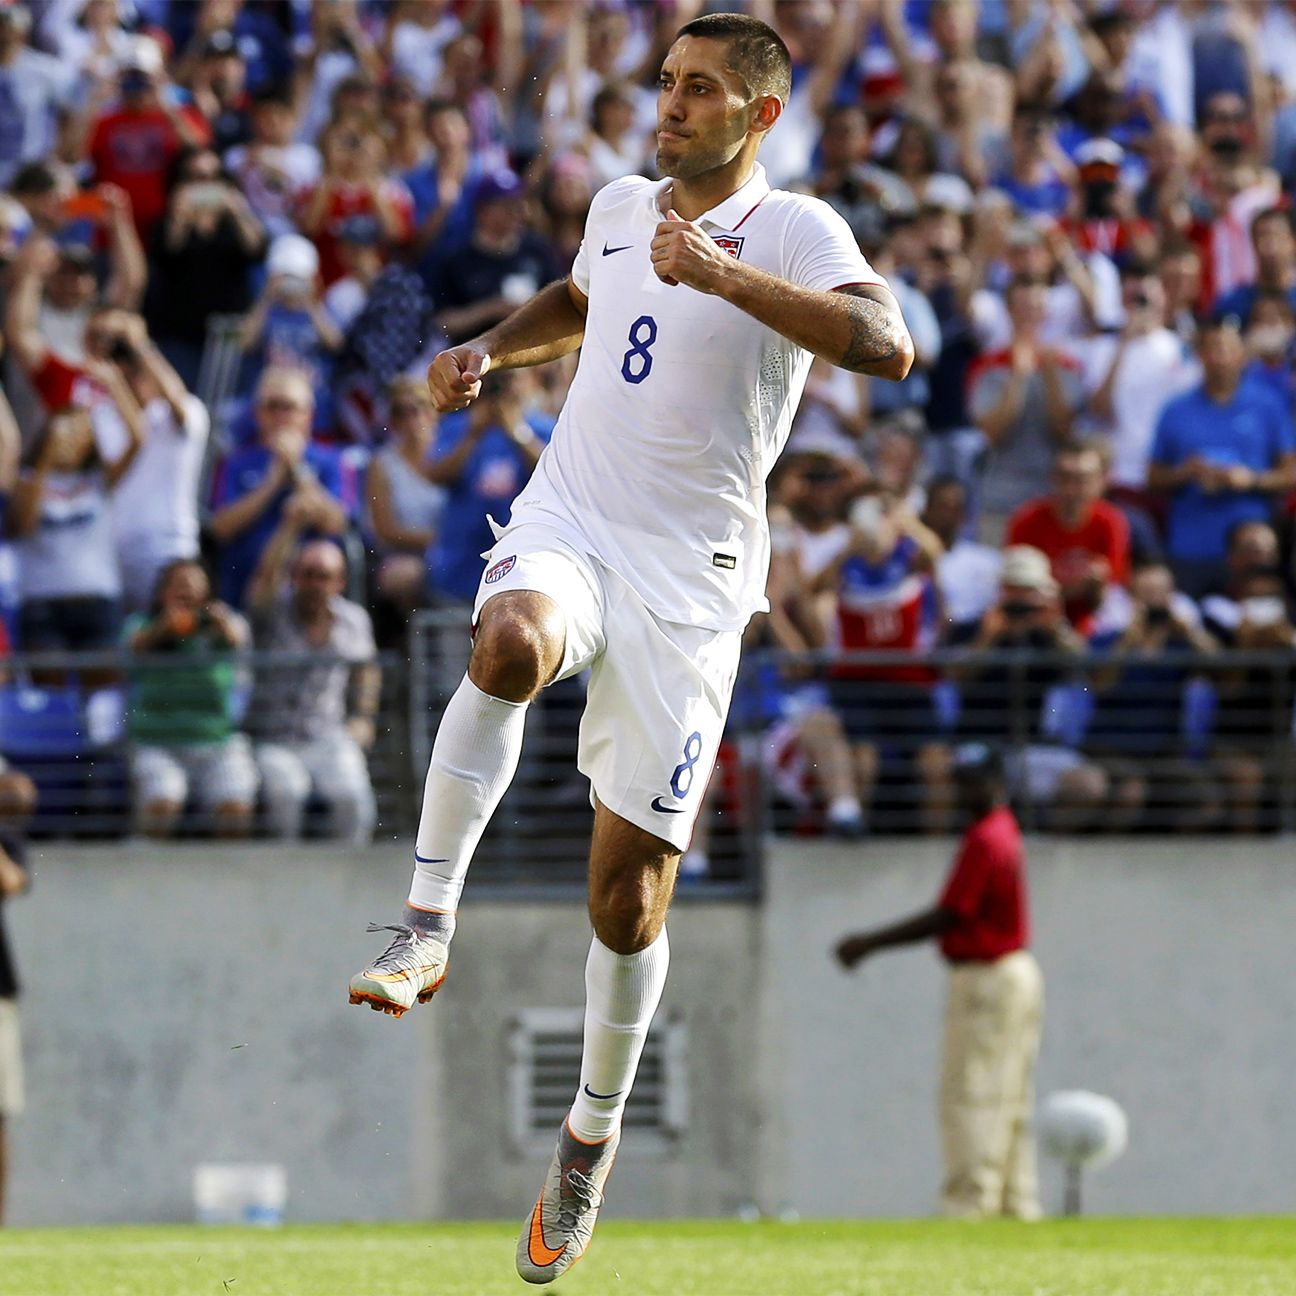 Clint Dempsey led all Gold Cup players in scoring, tallying seven goals for the U.S.